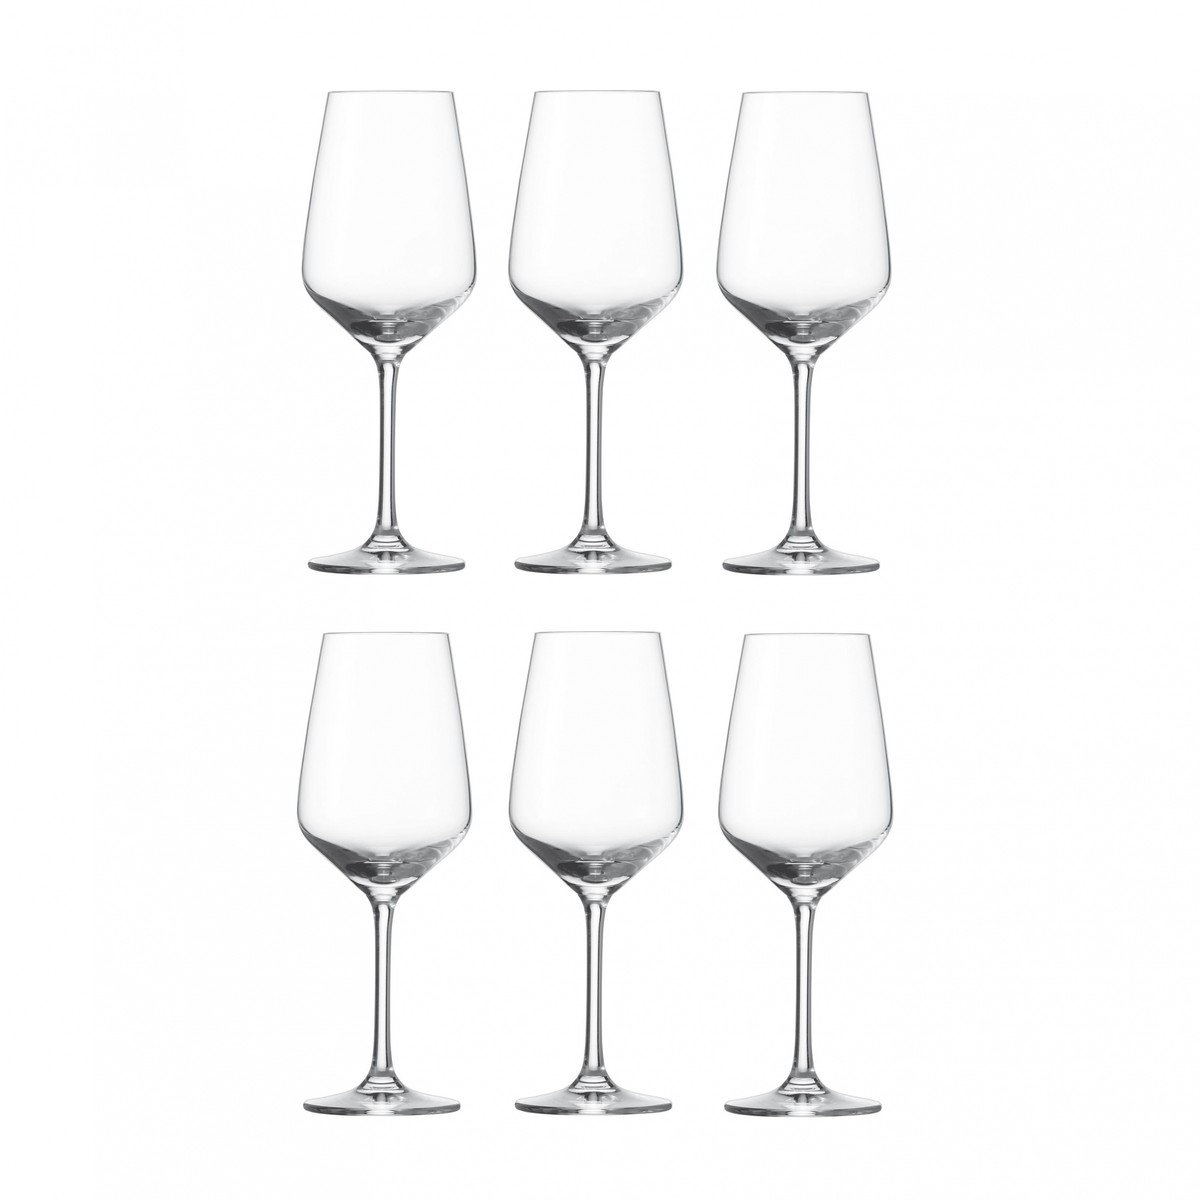 Inexpensive Wine Glasses | Schott Zwiesel Wine Glasses | Tableware Wholesale